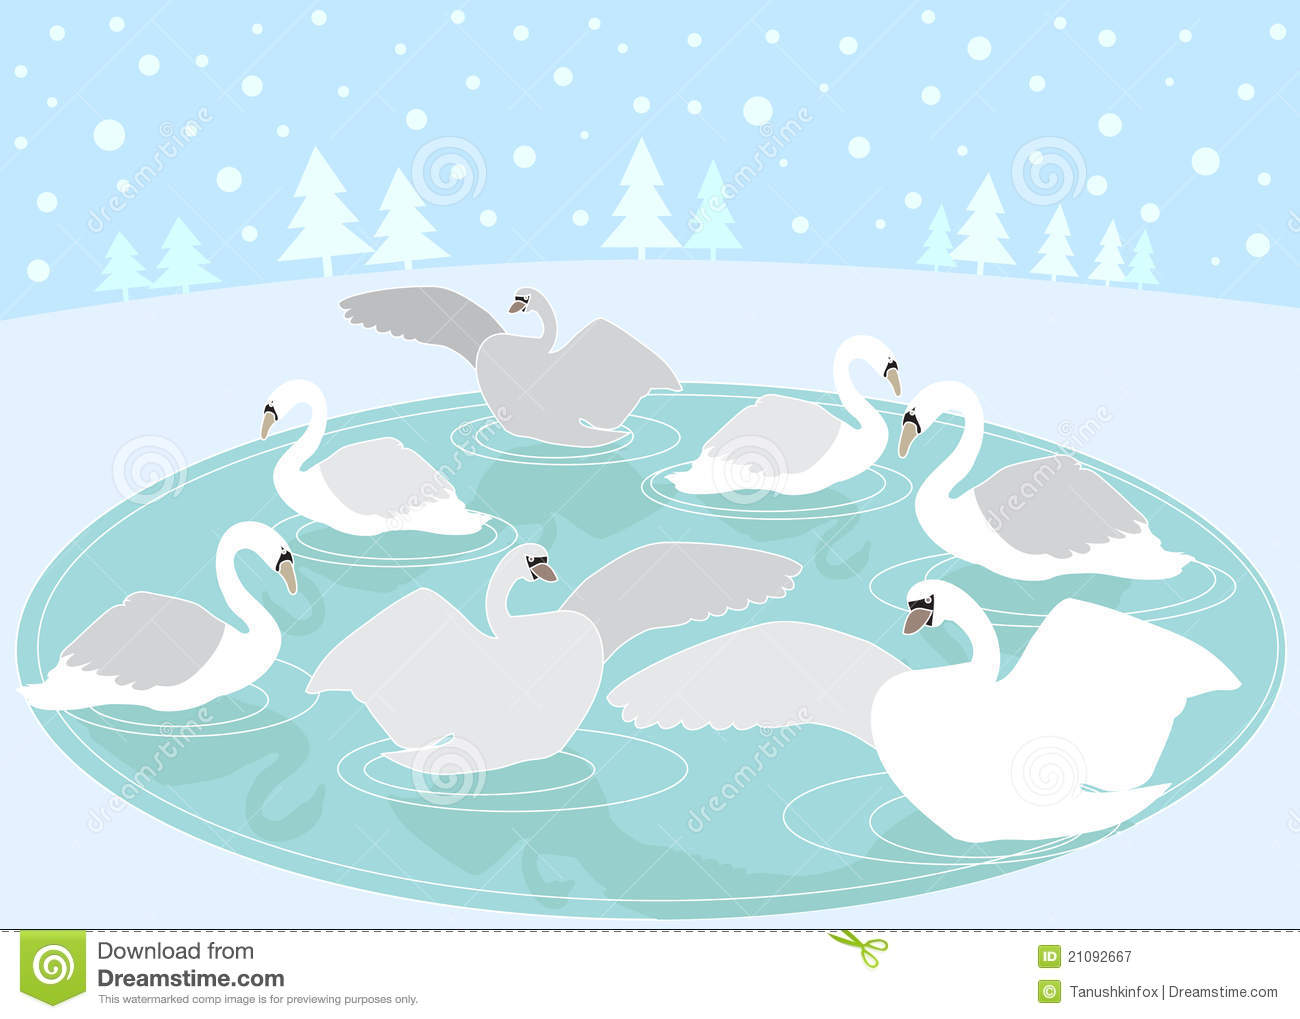 12 Days Of Christmas: 7 Swans A Swimming Stock Vector.